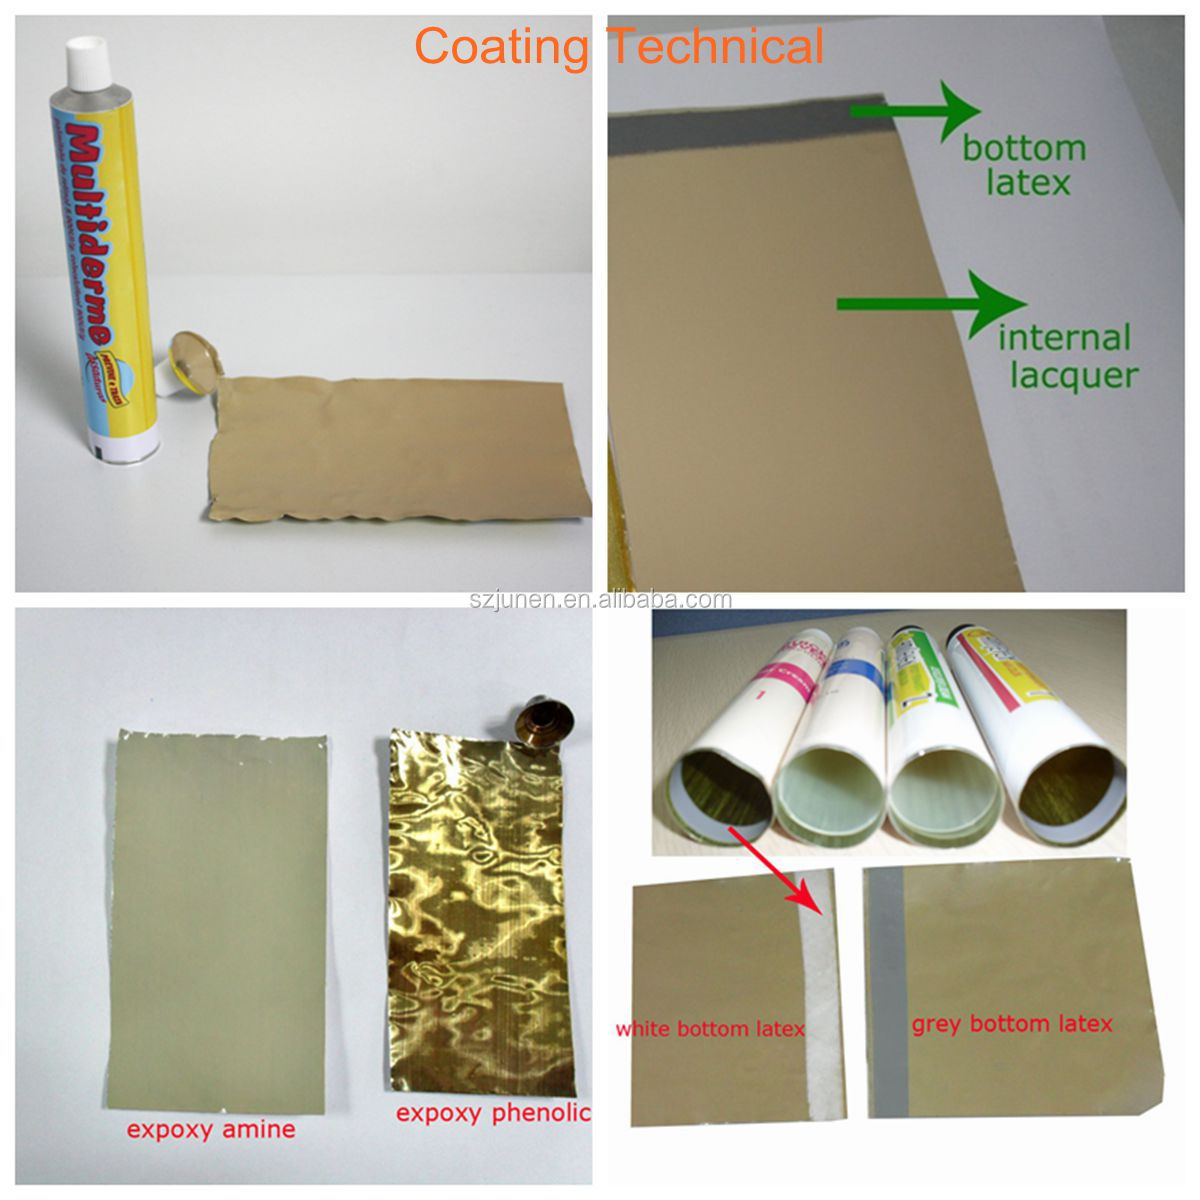 Coating Technical text